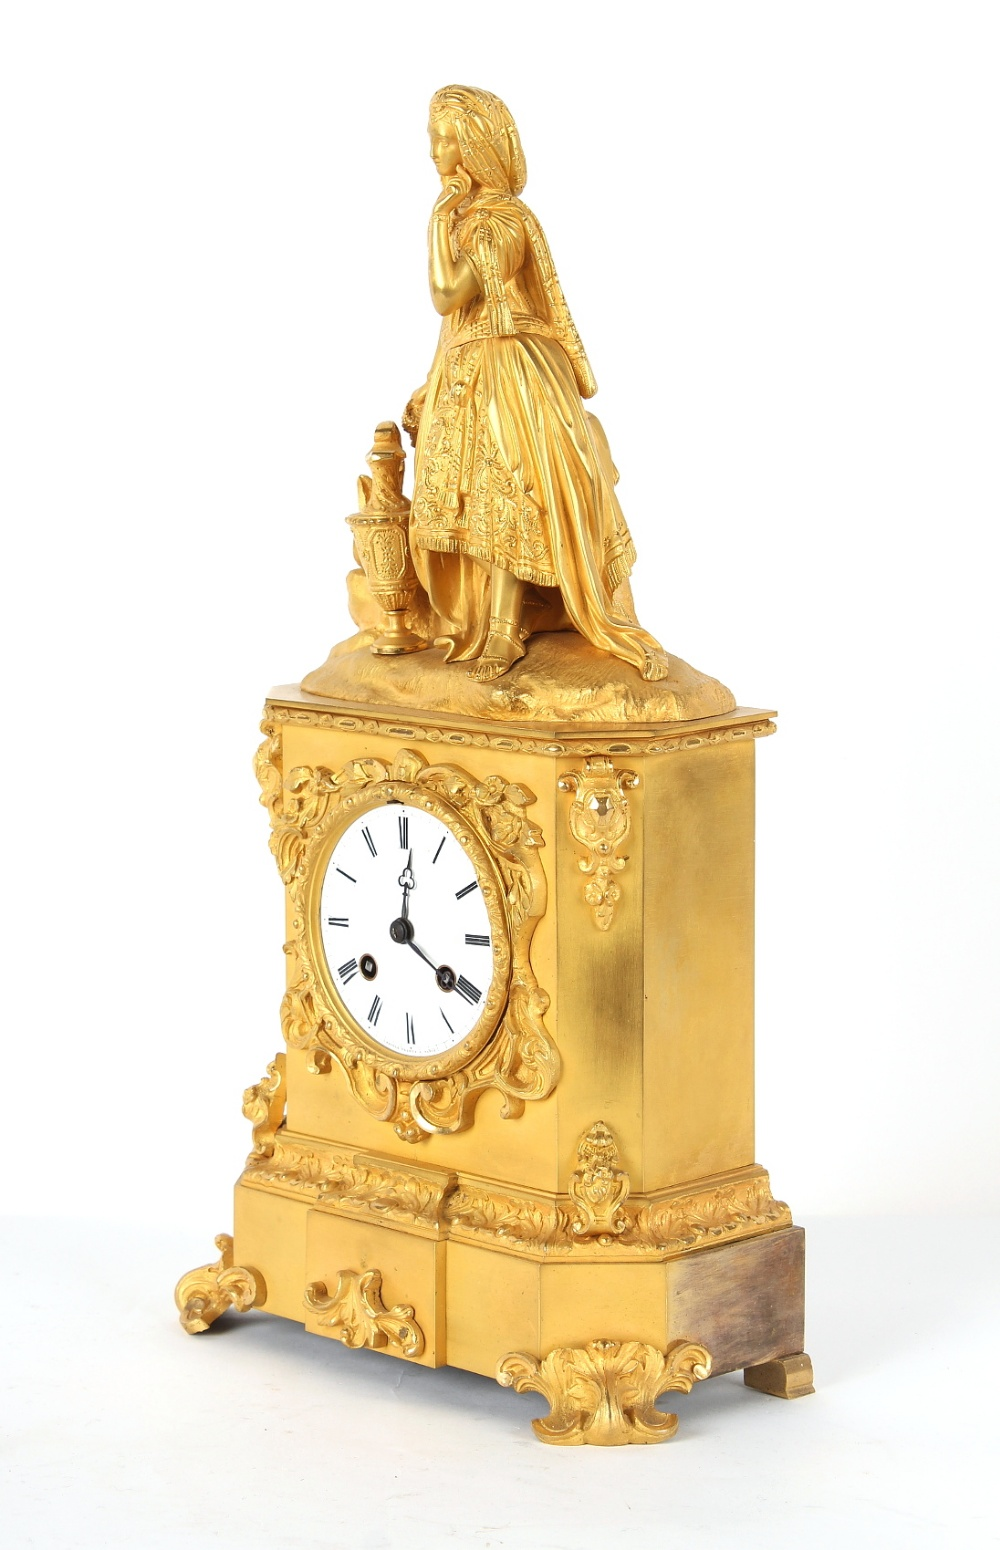 Property of a lady - a French ormolu cased mantel clock, circa 1845, surmounted by a figure of a - Image 2 of 3